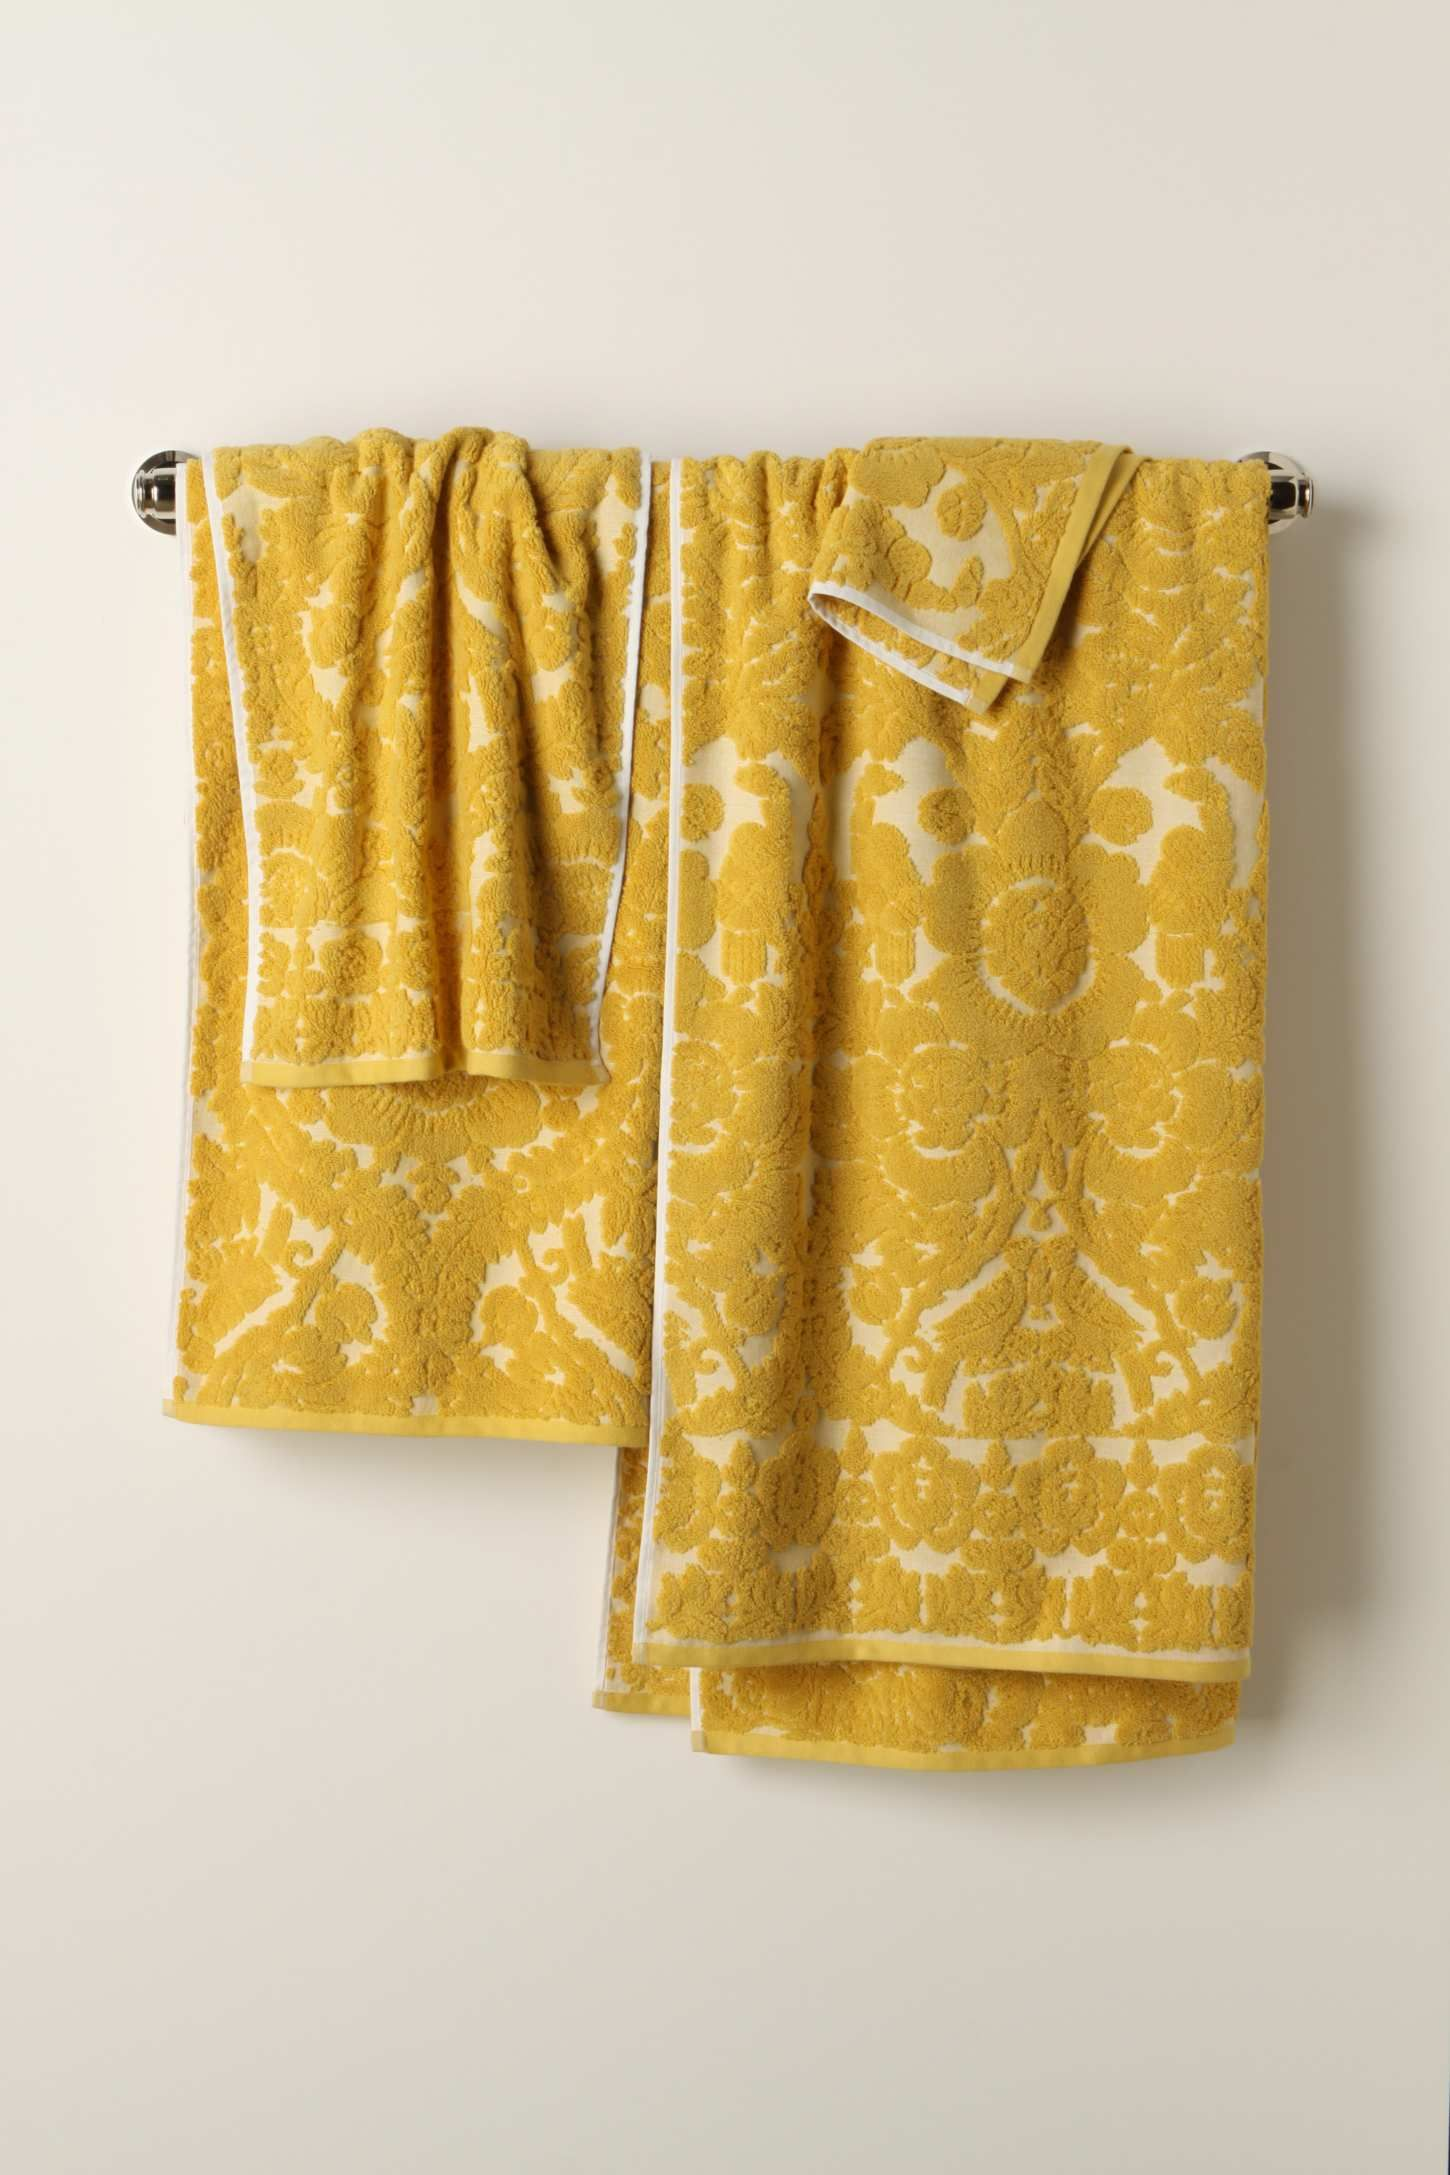 Yellow Towels Yellow Bathroom Towels Why Not Home Sweet Home Pinterest